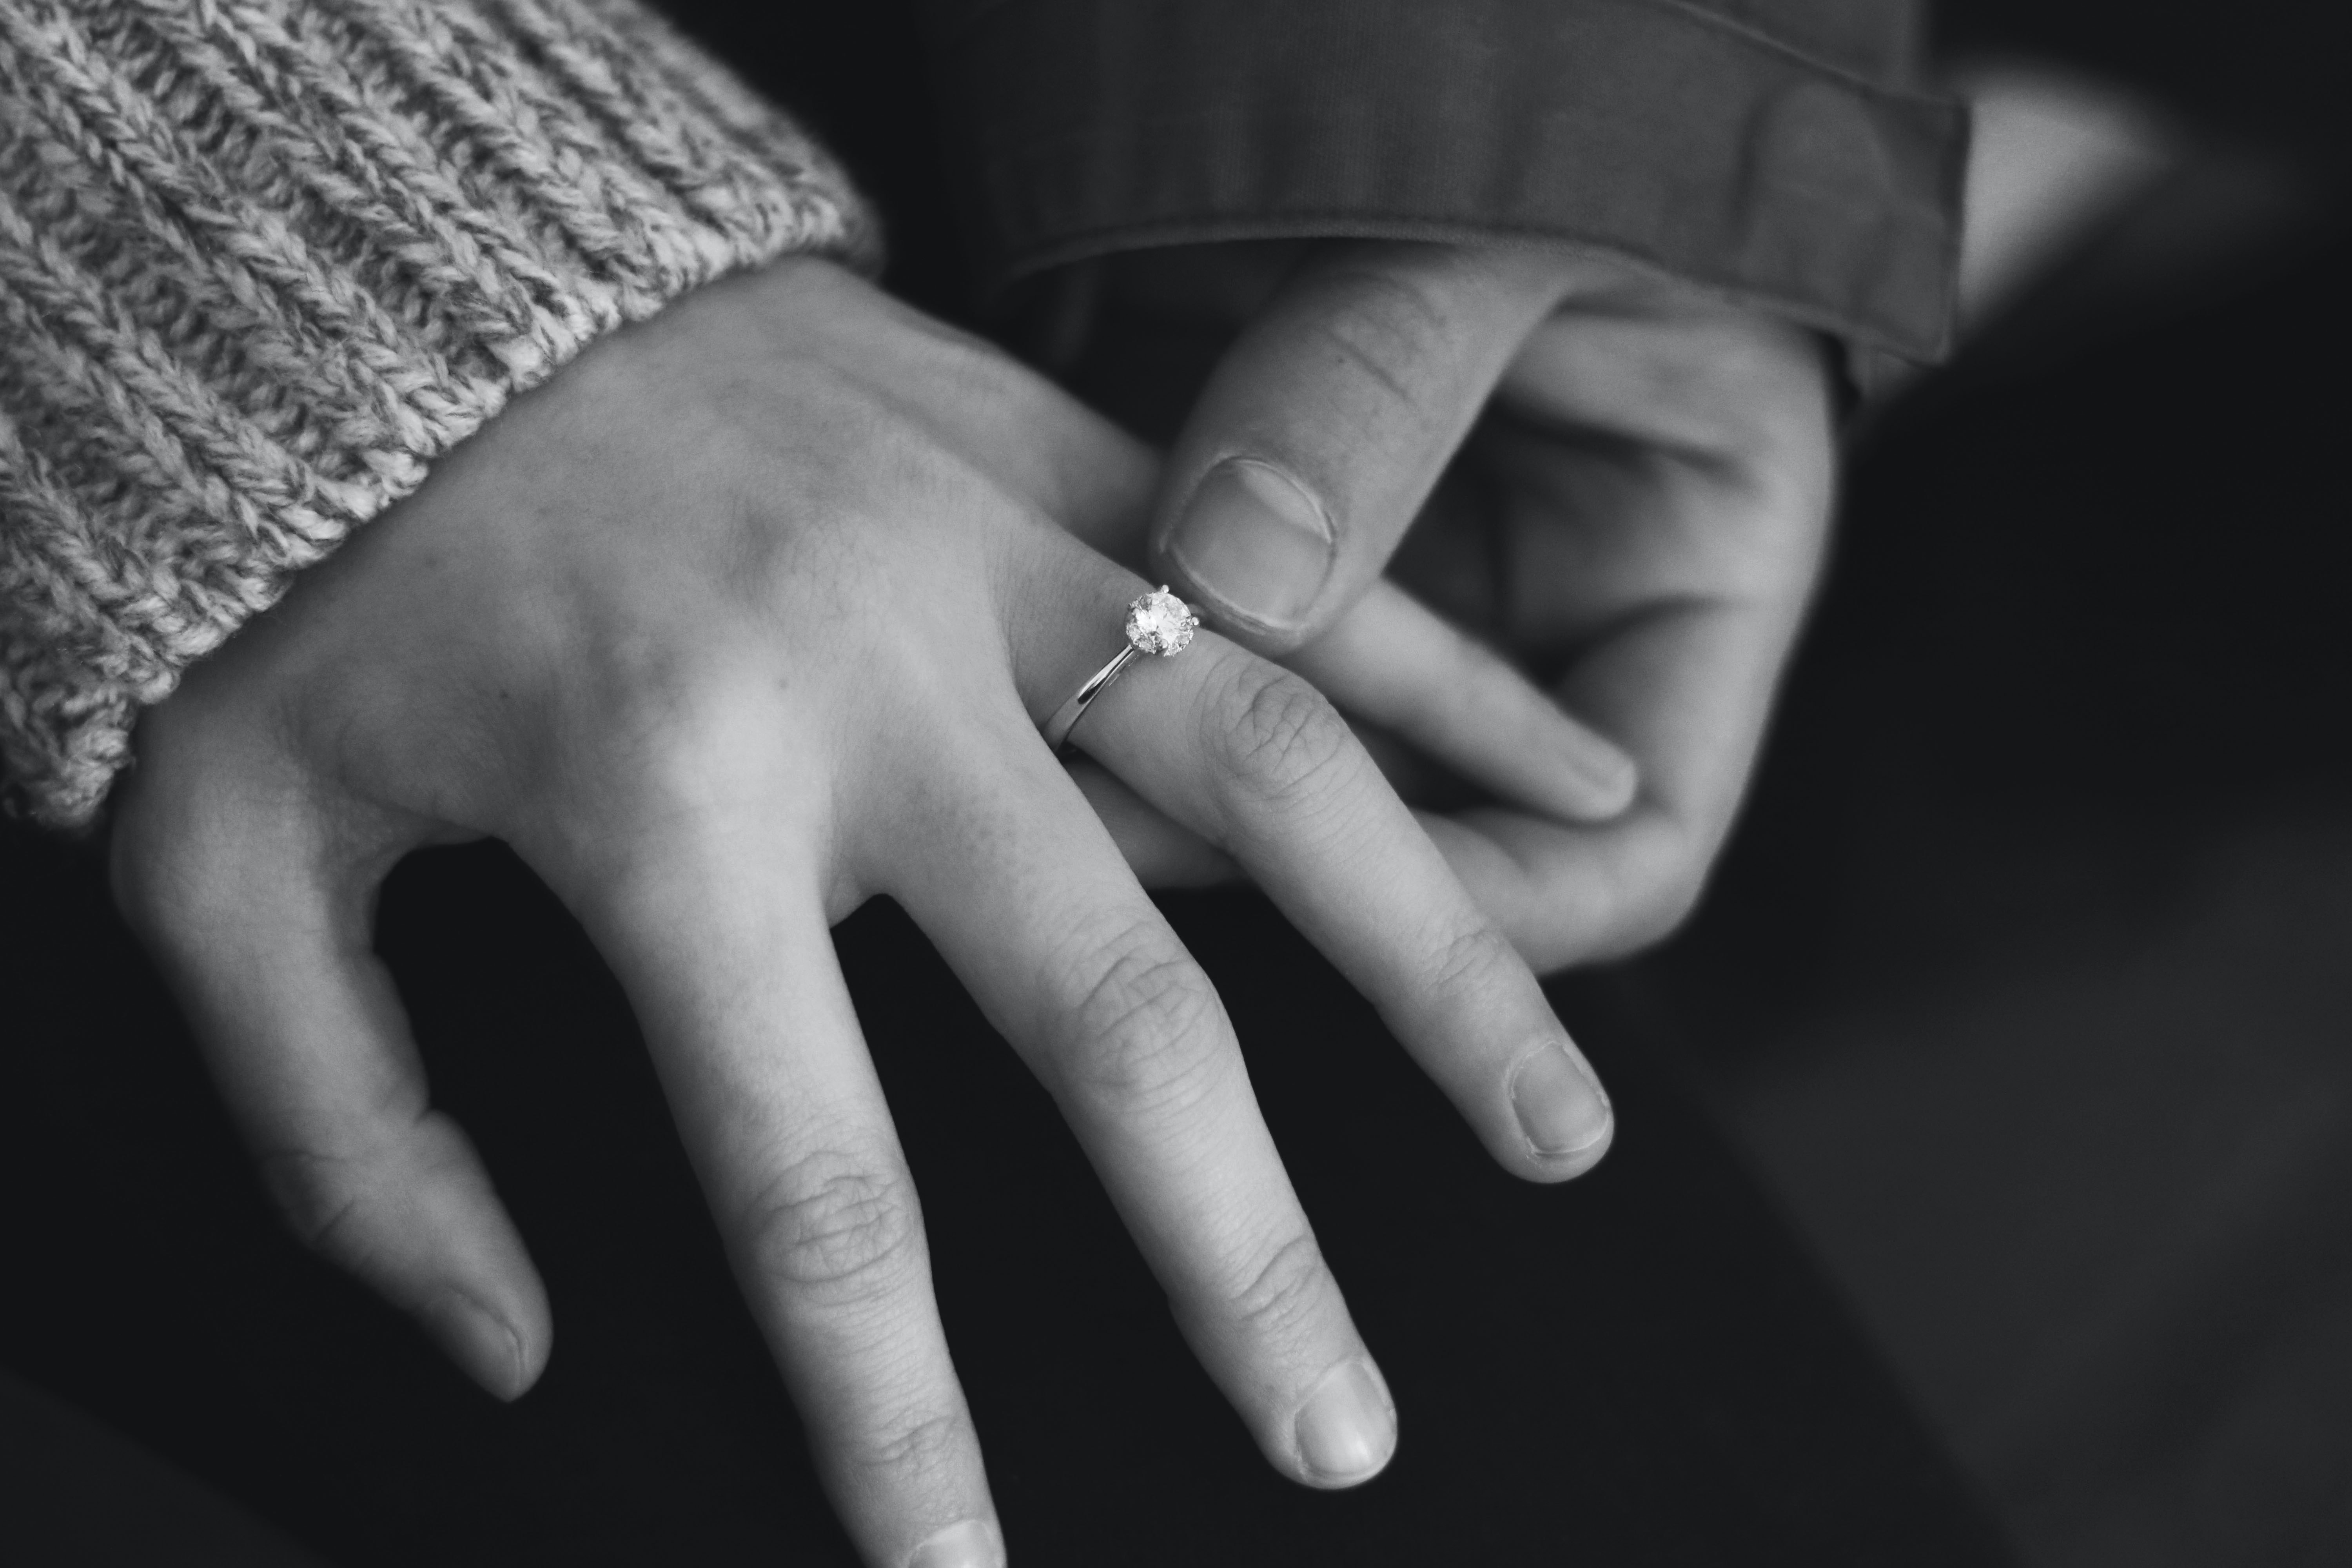 a female hand with an engagement ring is held by another hand